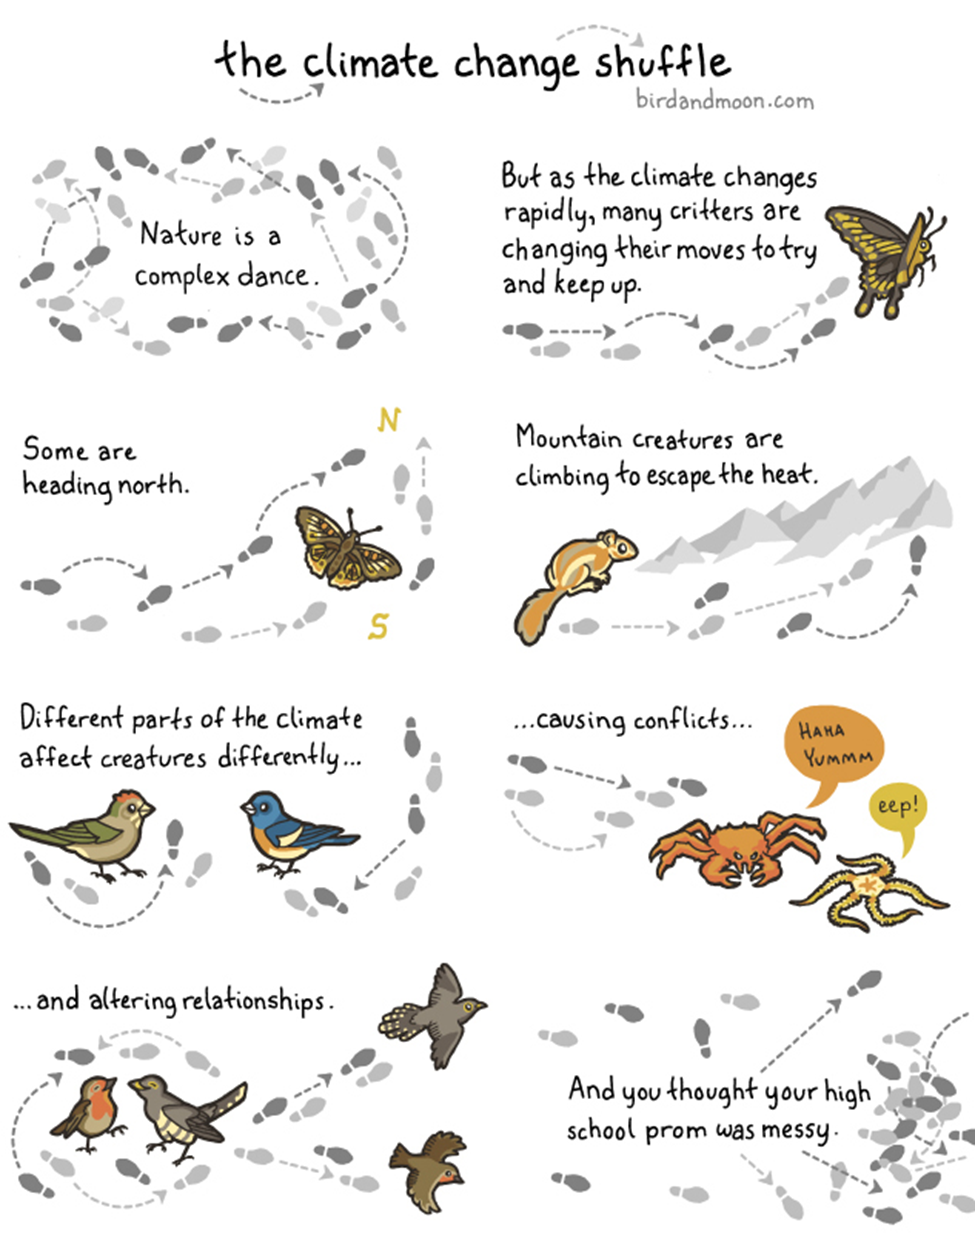 Image from Bird and Moon Science and Nature Cartoons at www.birdandmoon.com/comic/climate-change-shuffle